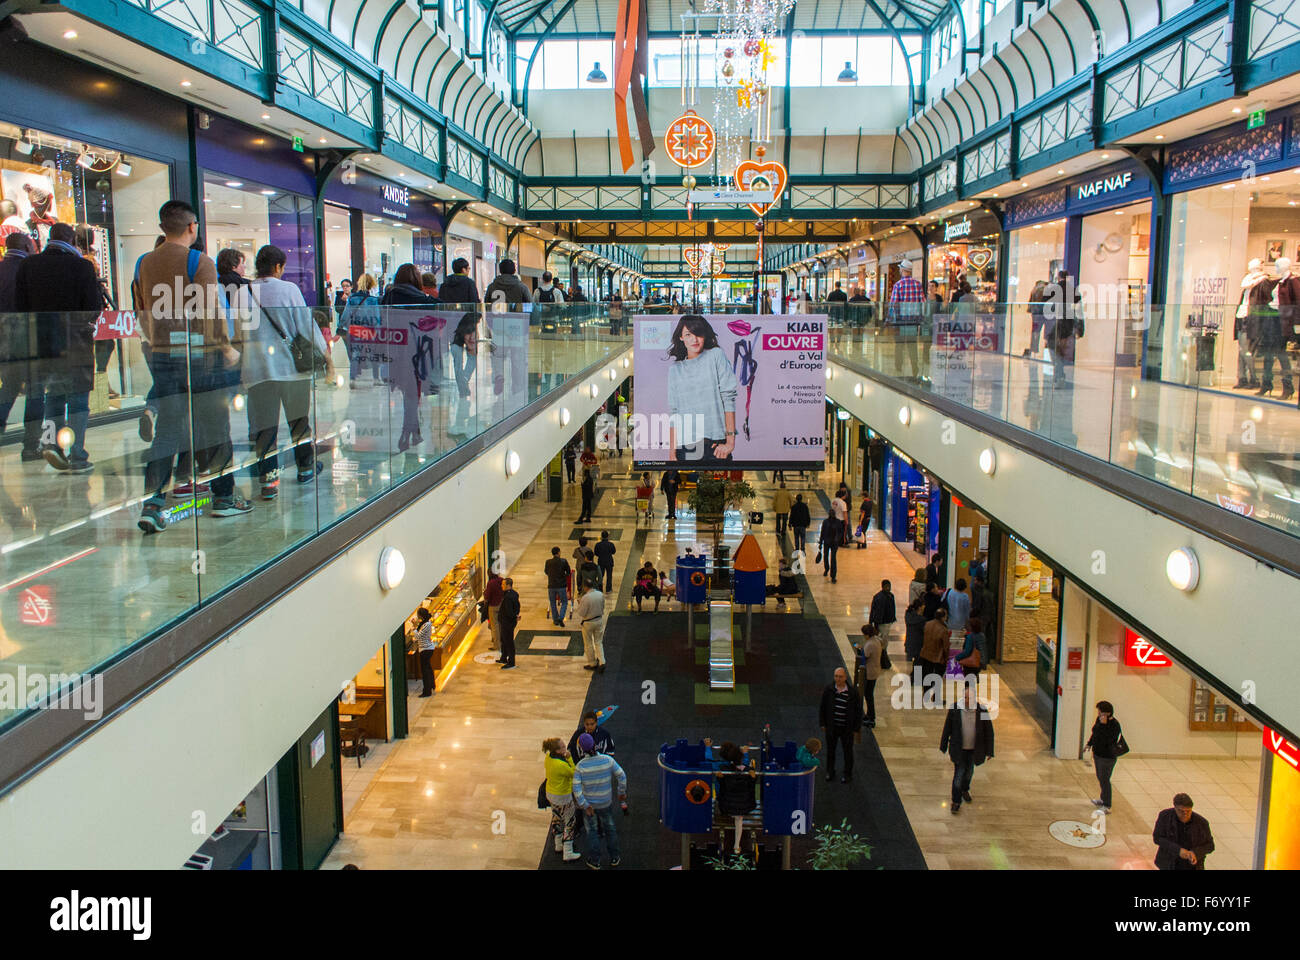 paris france people shopping inside mall centre commercial val stock photo 90353691 alamy. Black Bedroom Furniture Sets. Home Design Ideas